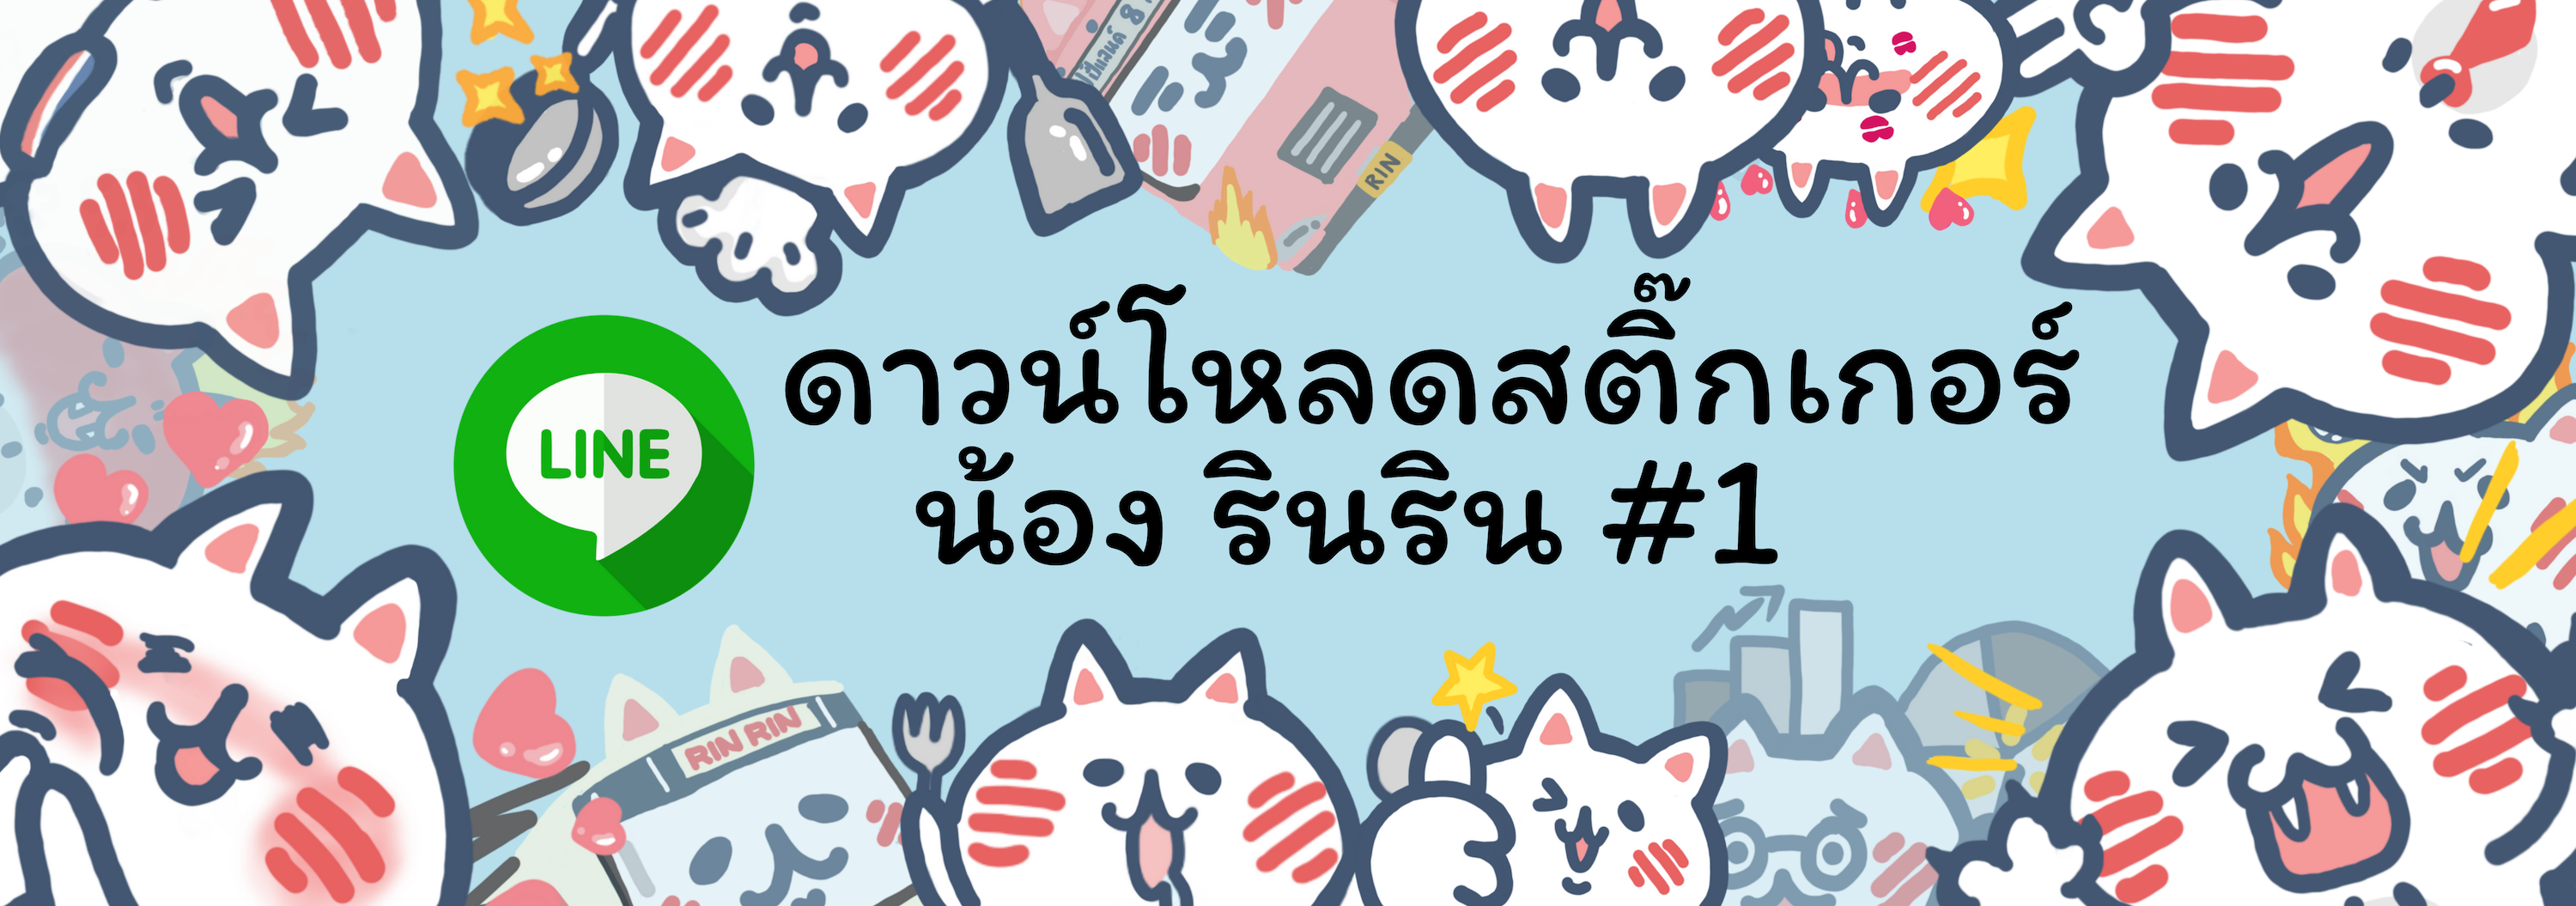 Rin Rin The Cat Rosalyn Sticker Line Collection 1 รสรินทร์ สูตรอาหาร